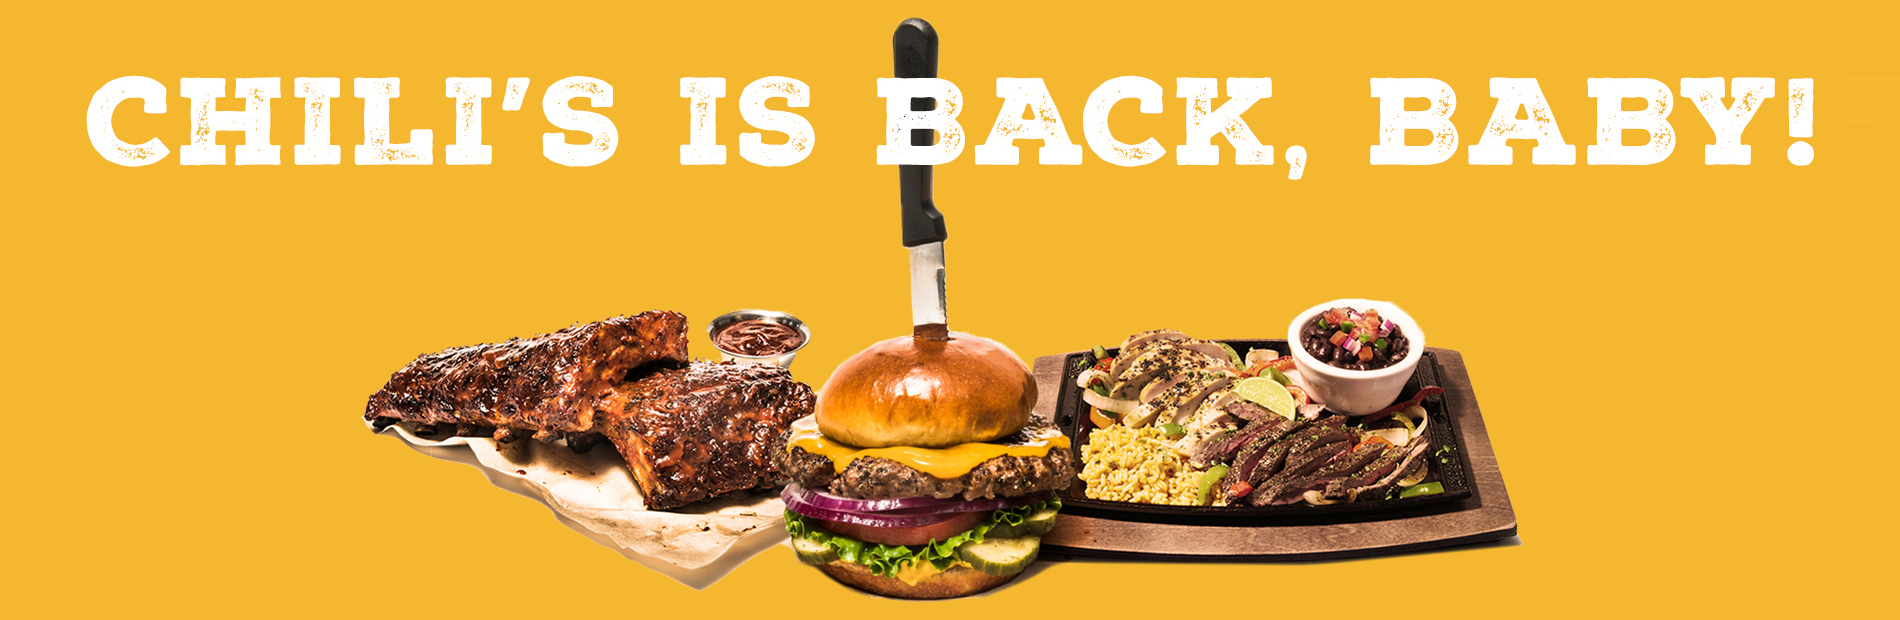 image relating to Chilis Menu Printable known as Oh Youngster, Chilis Is Back again, Kid Back again, Kid Back again